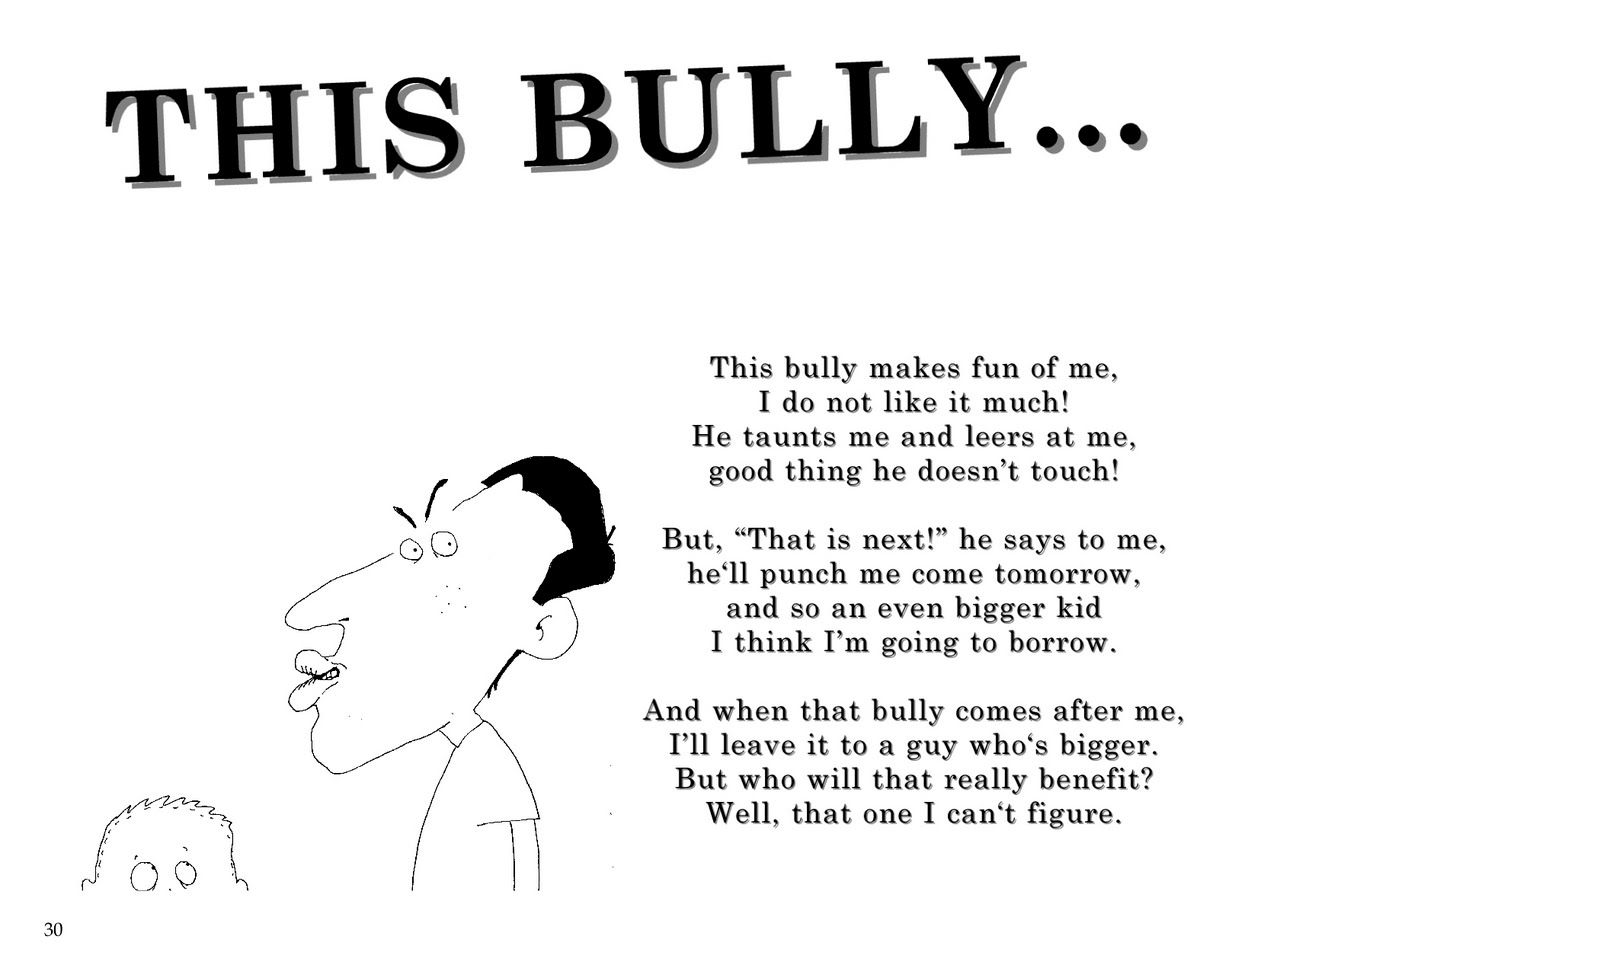 Overcoming Bullying Quotes